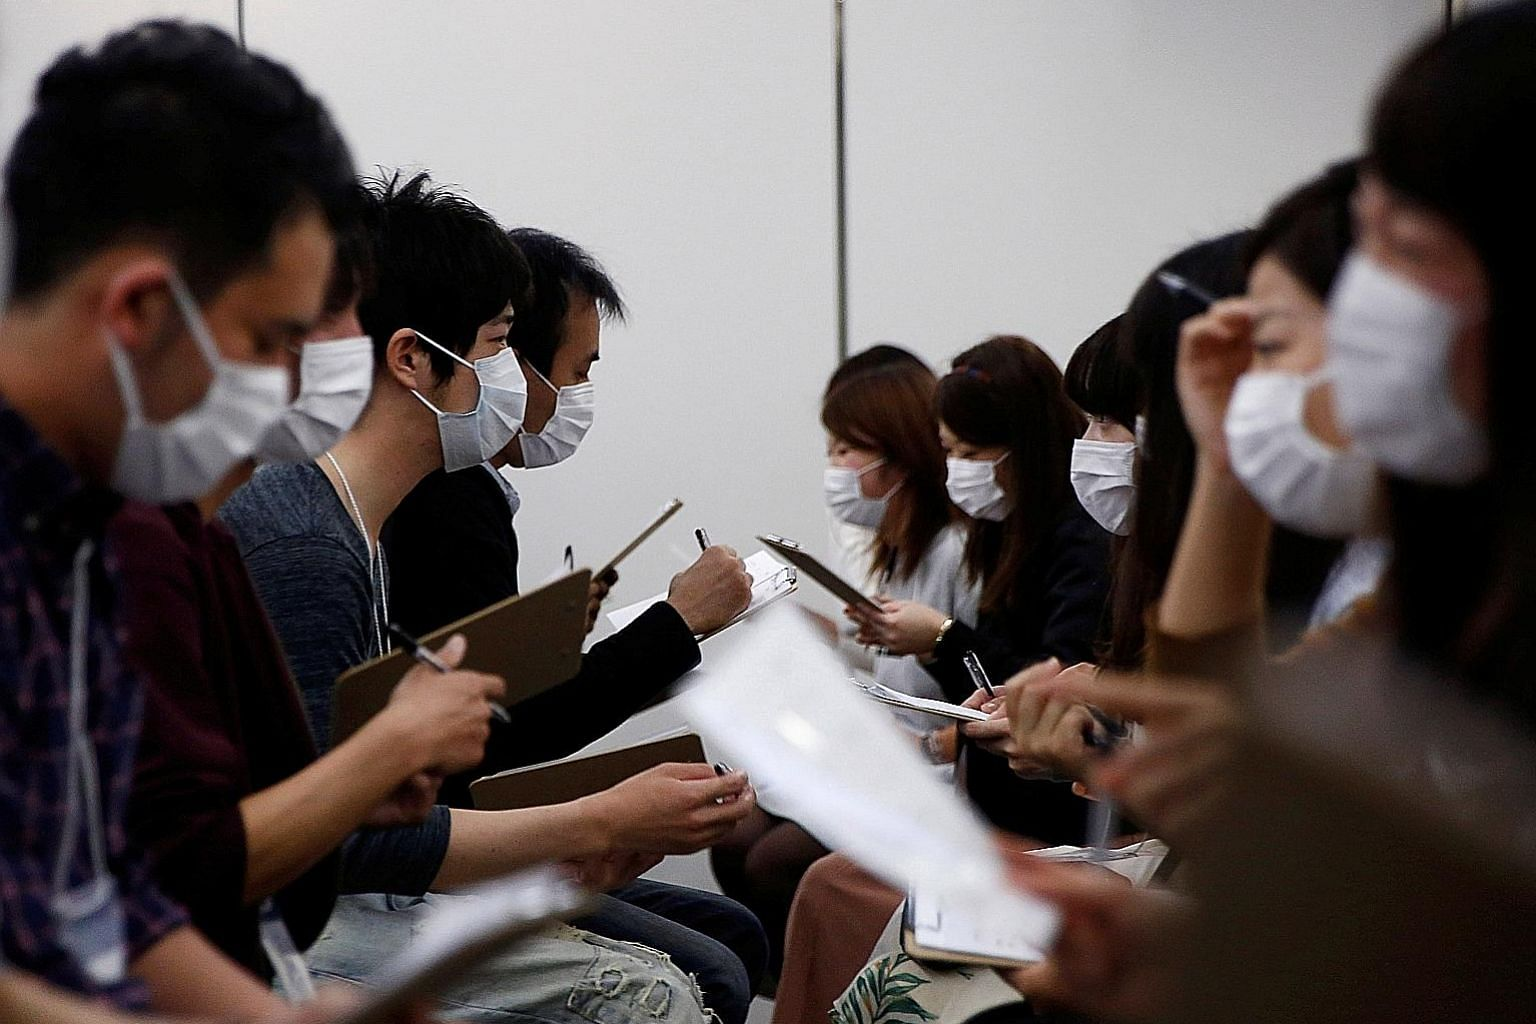 Masked matchmaking events - like this one (far left) in Tokyo last October - aim to encourage participants to get to know each other without being judged on looks. (Left) Spring in Tokyo comes with blooming cherry blossoms and hay fever, which affect